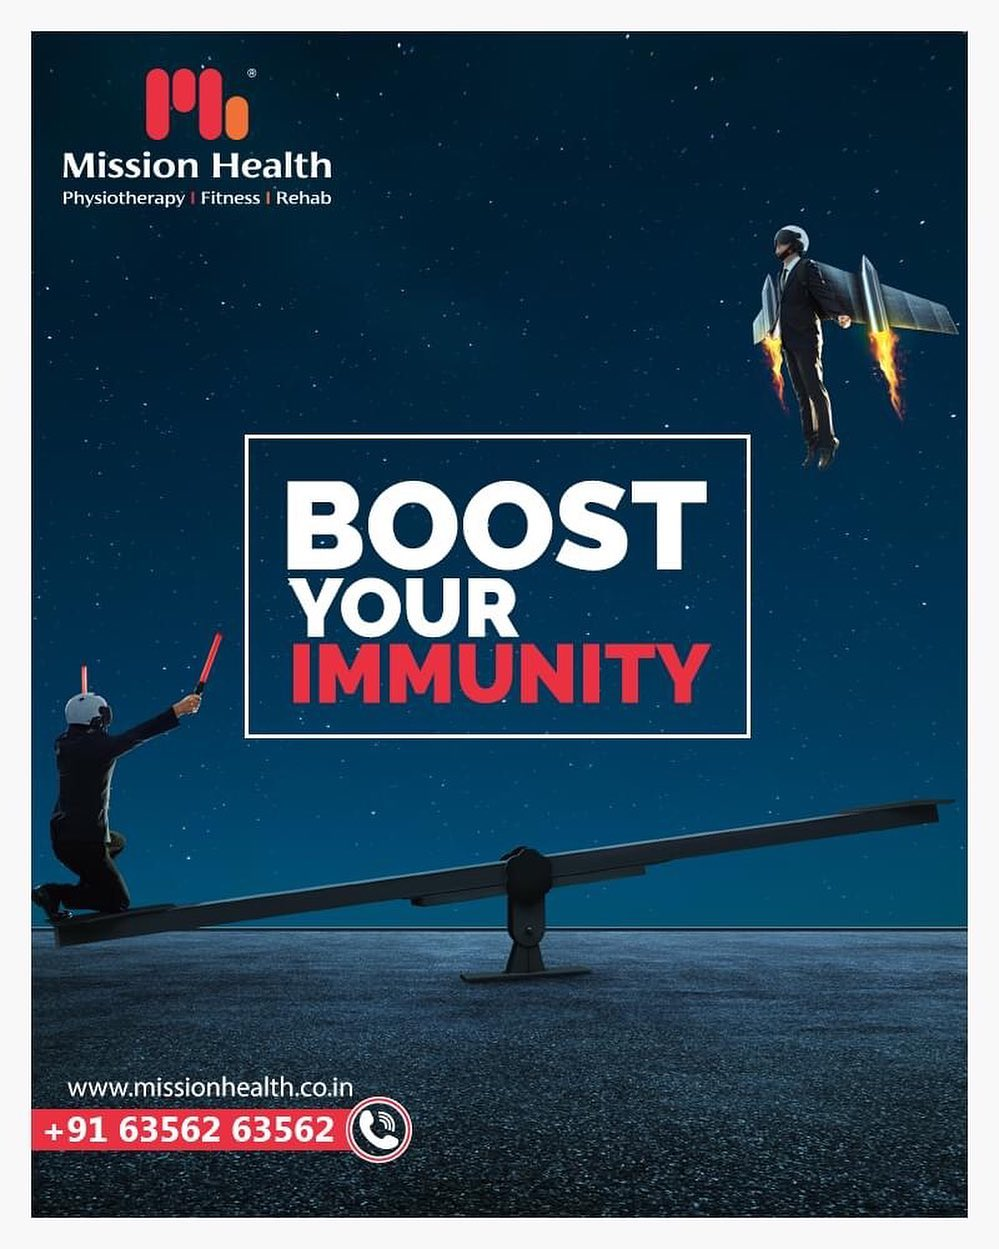 Boost your Immunity  Join the First-Ever Immunity Enhancement Program by Mission Health.  Mission Health has come up with a 360° Immunity Enhancement Program that includes the methodology of our ancient Vedas to the world's most advanced techniques used to power charge our protective power against any infection or disease.  Personal and Online Sessions Available  Register Now  Call +916356263562 www.missionhealth.co.in  #IndiaFightsCorona #Coronavirus #stayathome #lockdownopd #vokalforlocal #aatmnirbharbharat #immunity #immunitybooster #immunityboost #boostimmunity #ayurveda #homeopathy #nutrition #yoga #meditation #healthydiet #eathealthy #doyoga ##MissionHealth #MissionHealthIndia #AbilityClinic #MovementIsLife